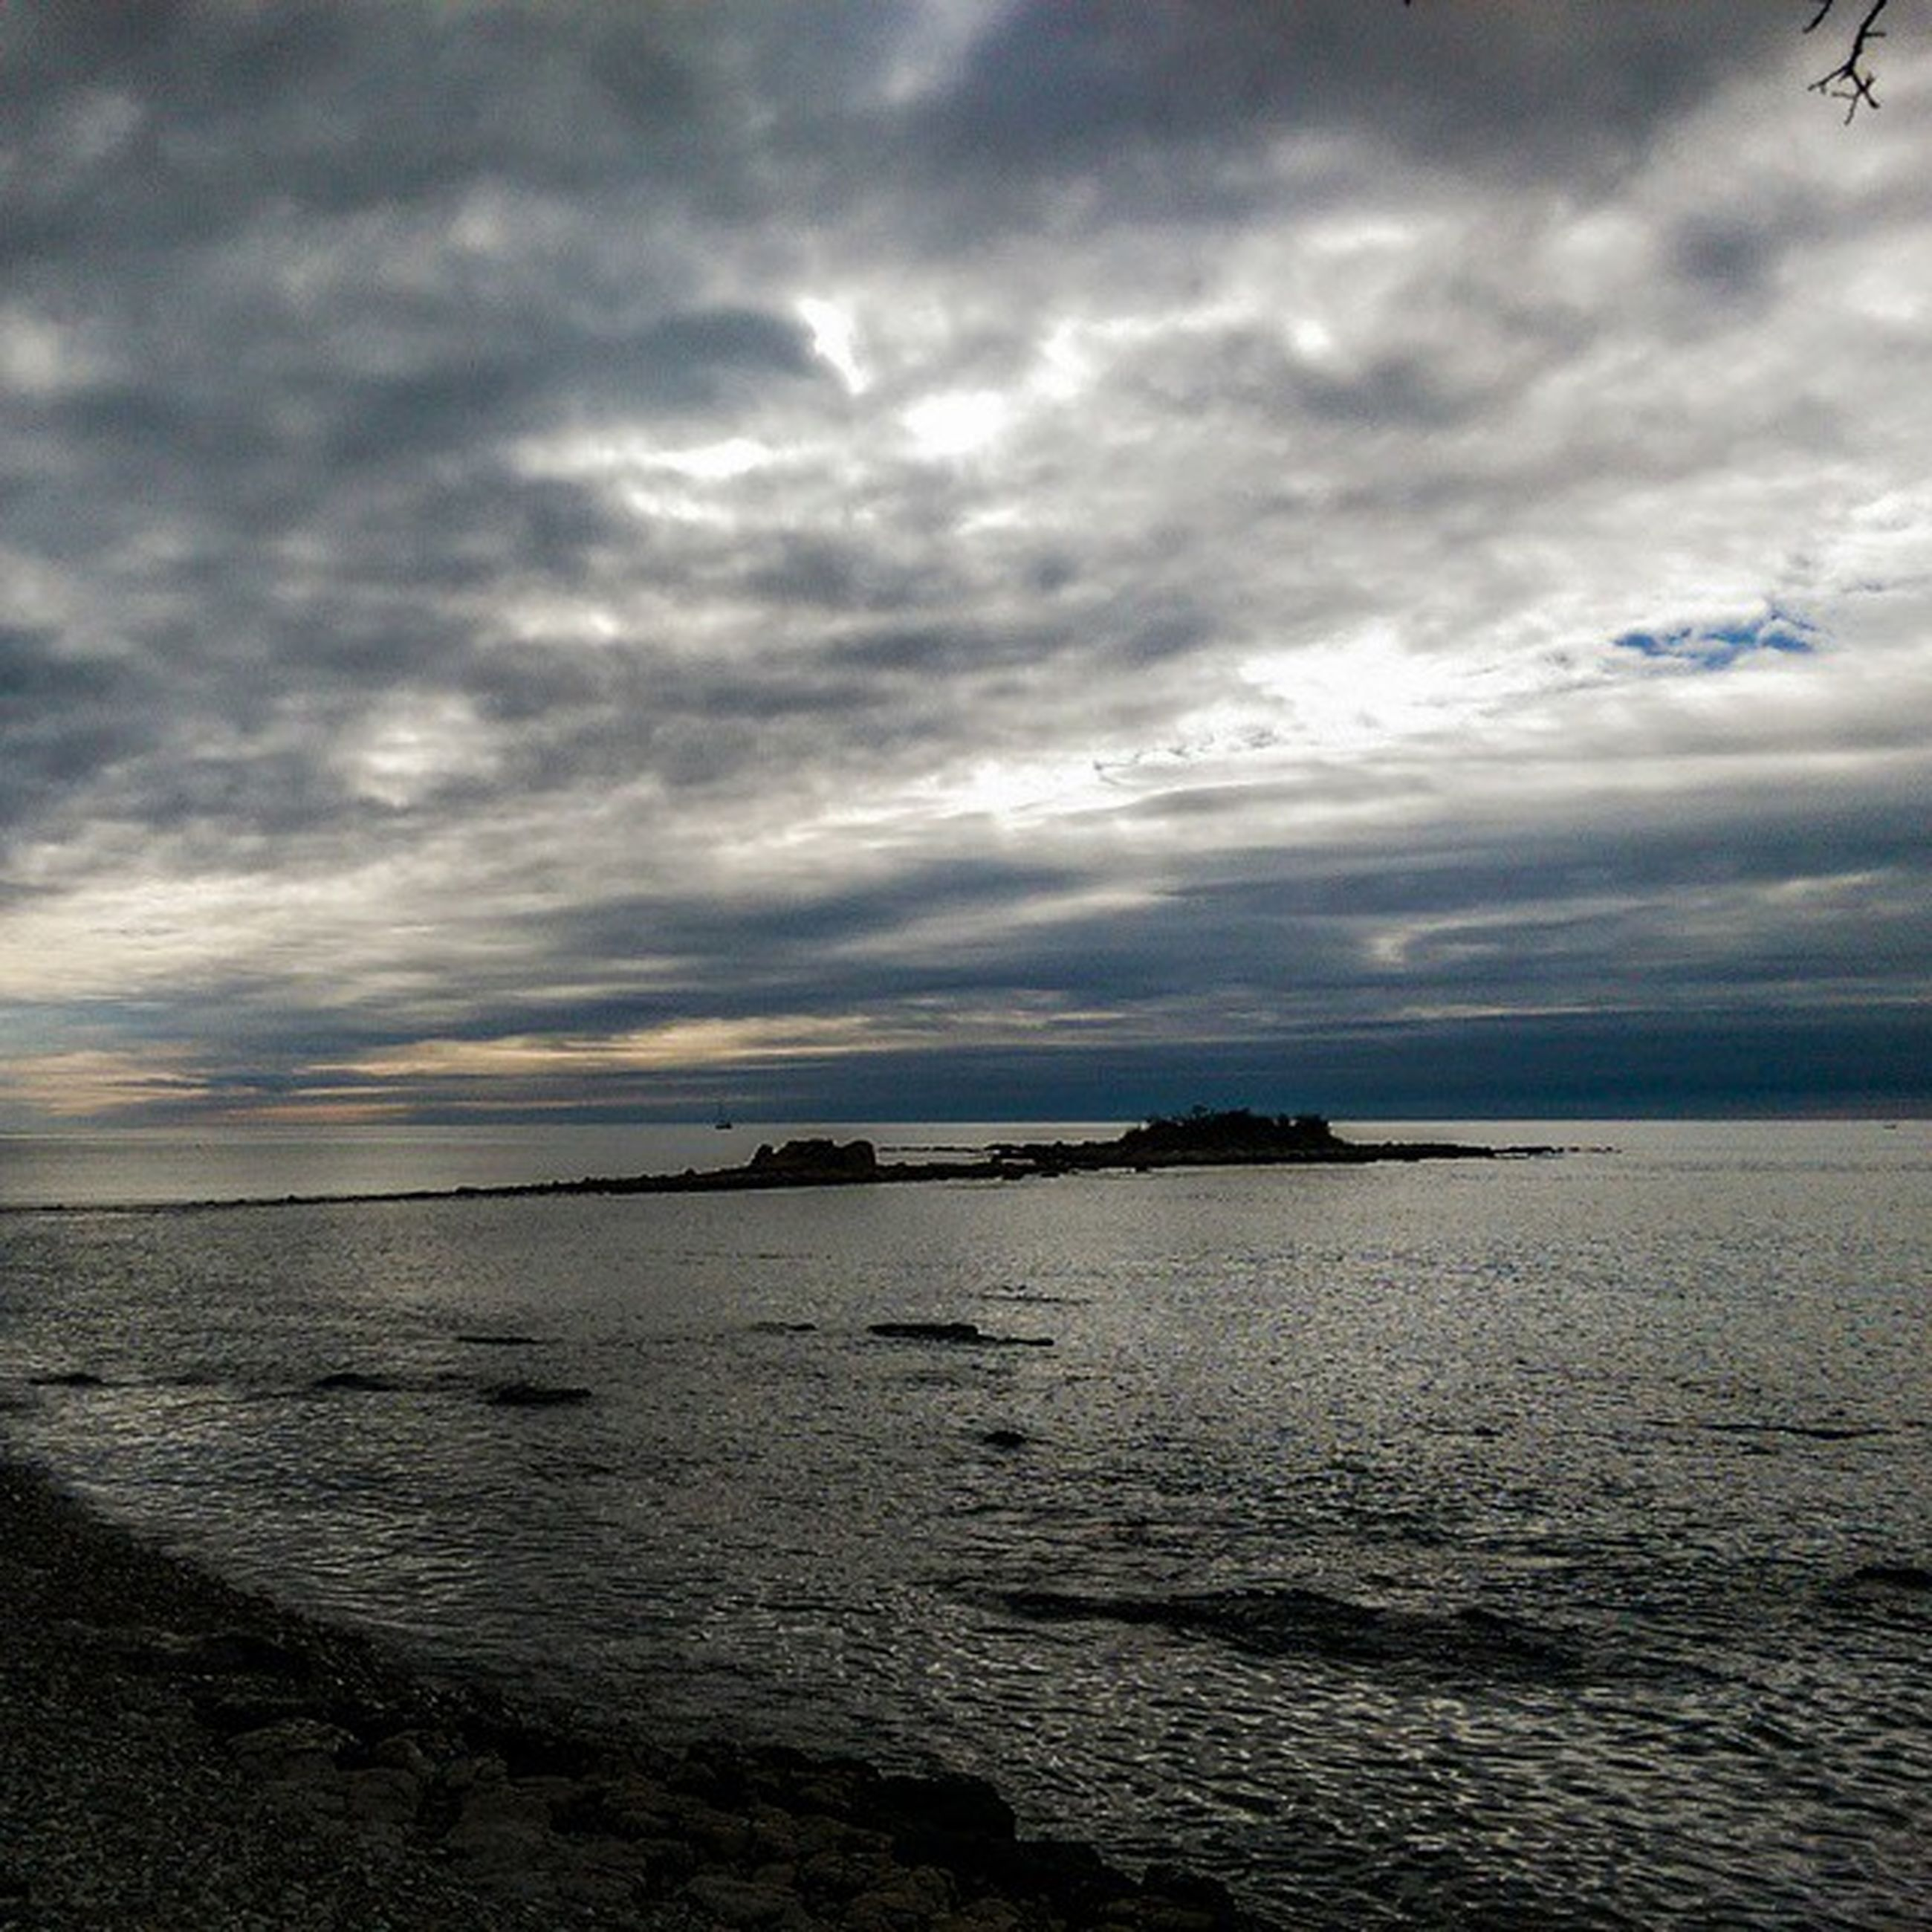 sea, water, sky, cloud - sky, cloudy, tranquil scene, scenics, horizon over water, tranquility, beauty in nature, sunset, nature, weather, cloud, beach, overcast, idyllic, shore, dramatic sky, dusk